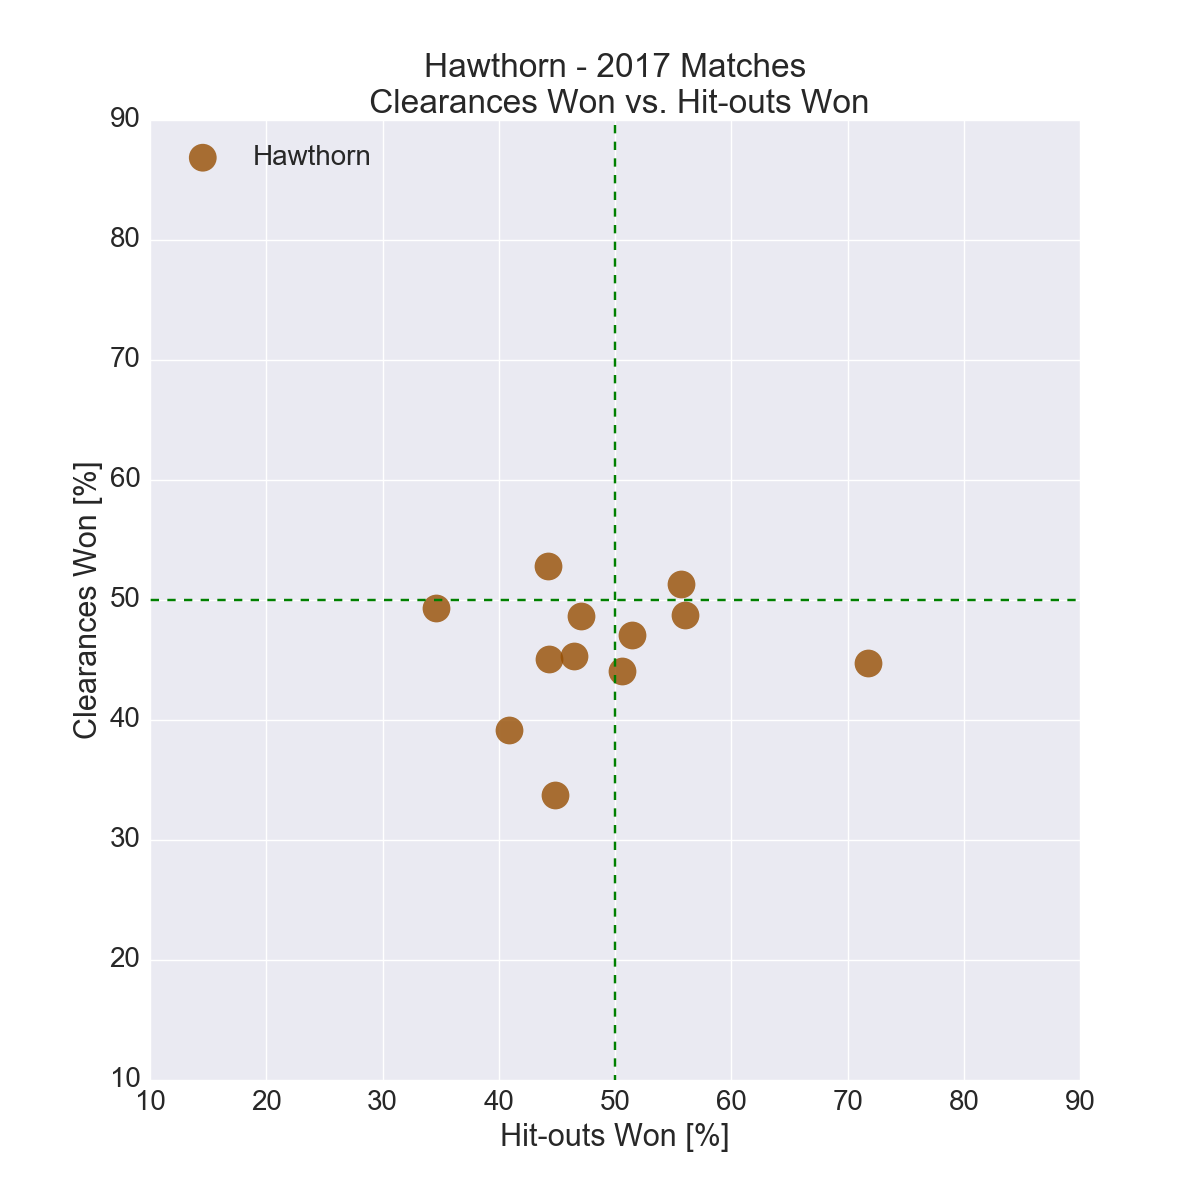 Figure-13: Hawthorn in 2017 – Clearances Won vs. Hit-outs Won